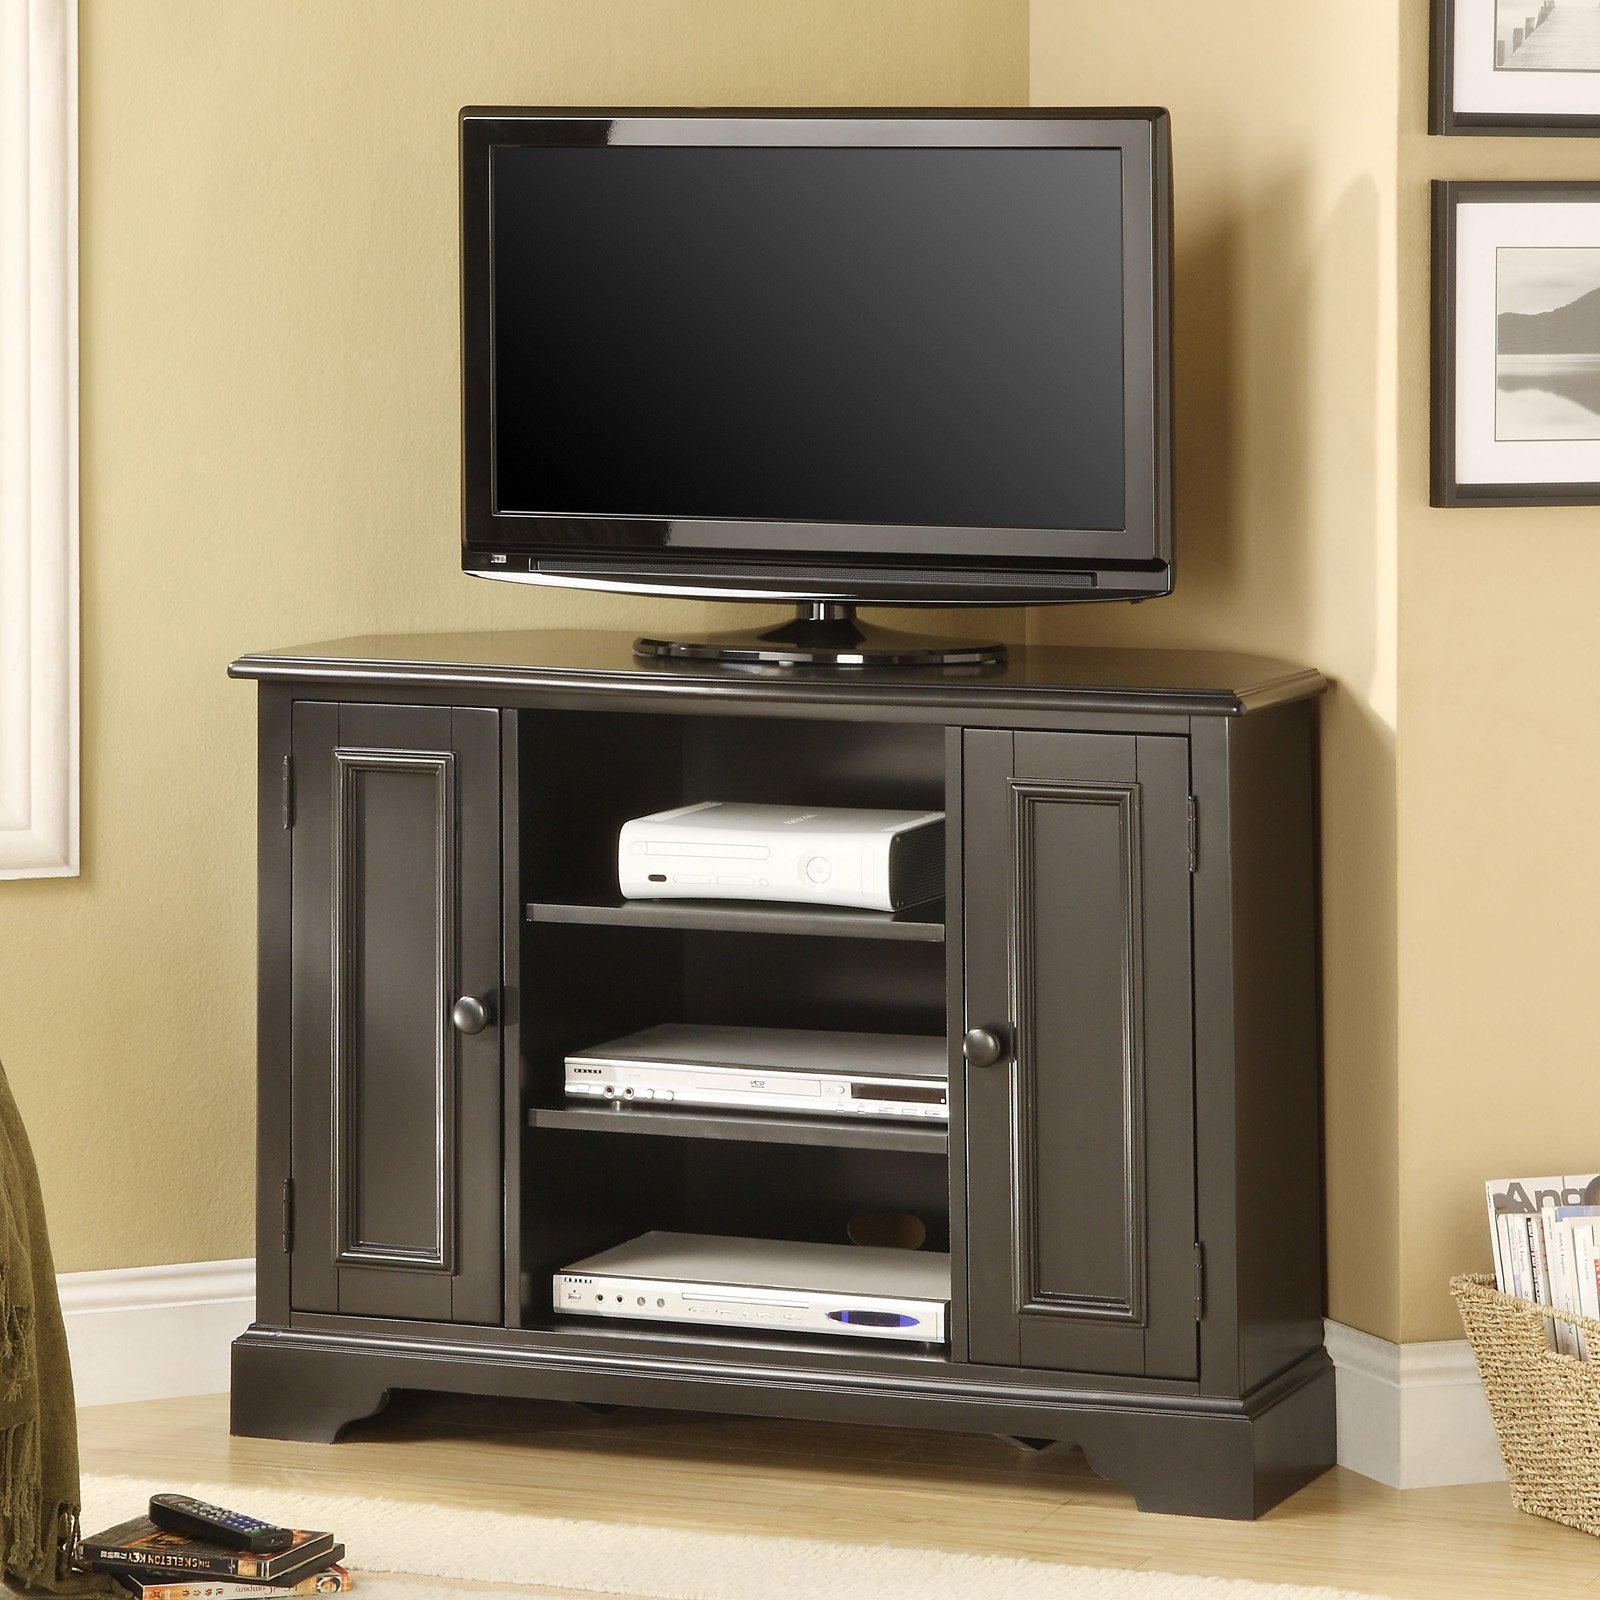 Tv Stand For Bedroom Corner Design Interior Stands Small intended for proportions 1600 X 1600